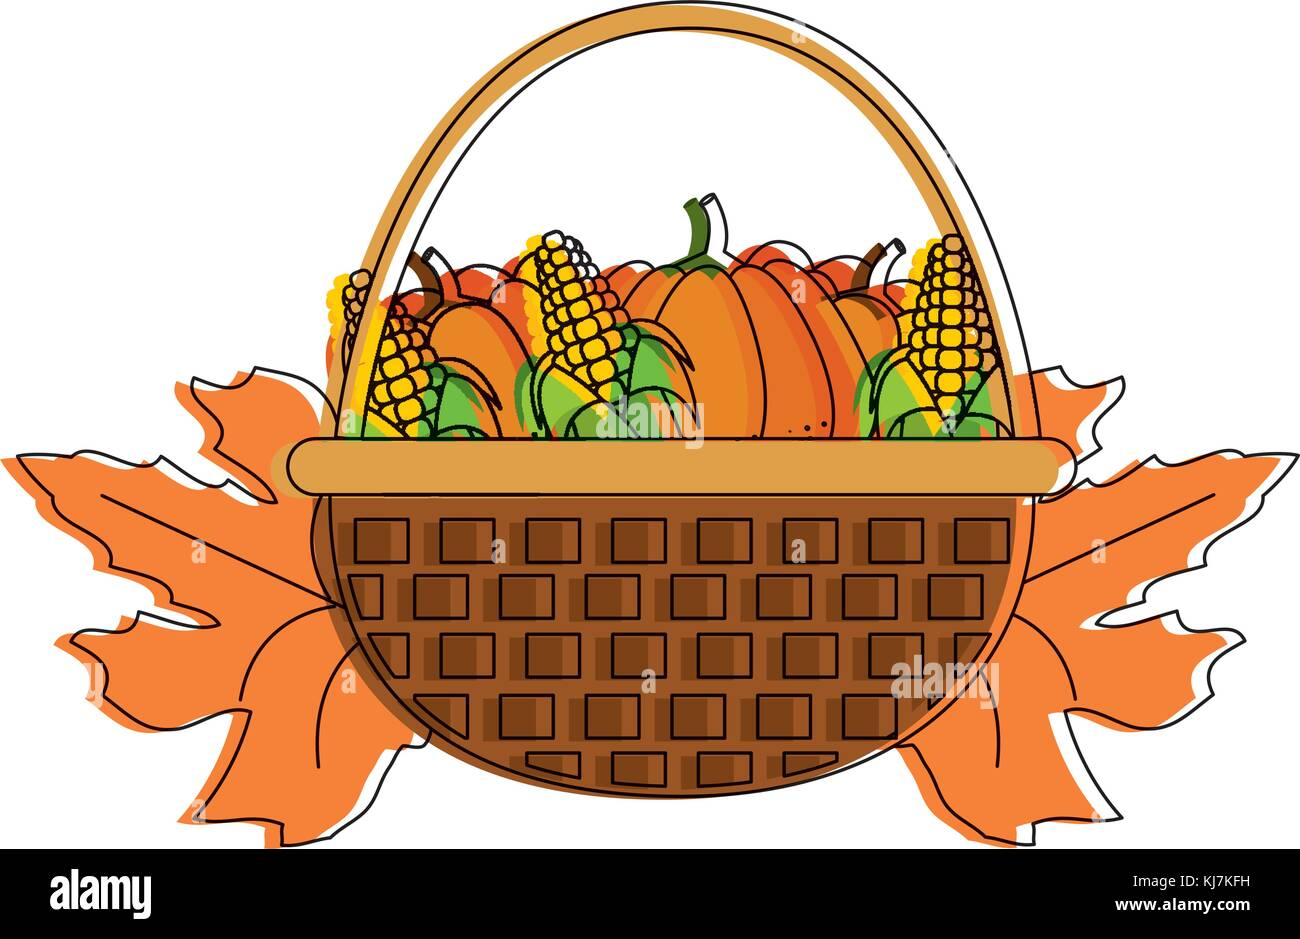 Pumpkins and corns design - Stock Vector